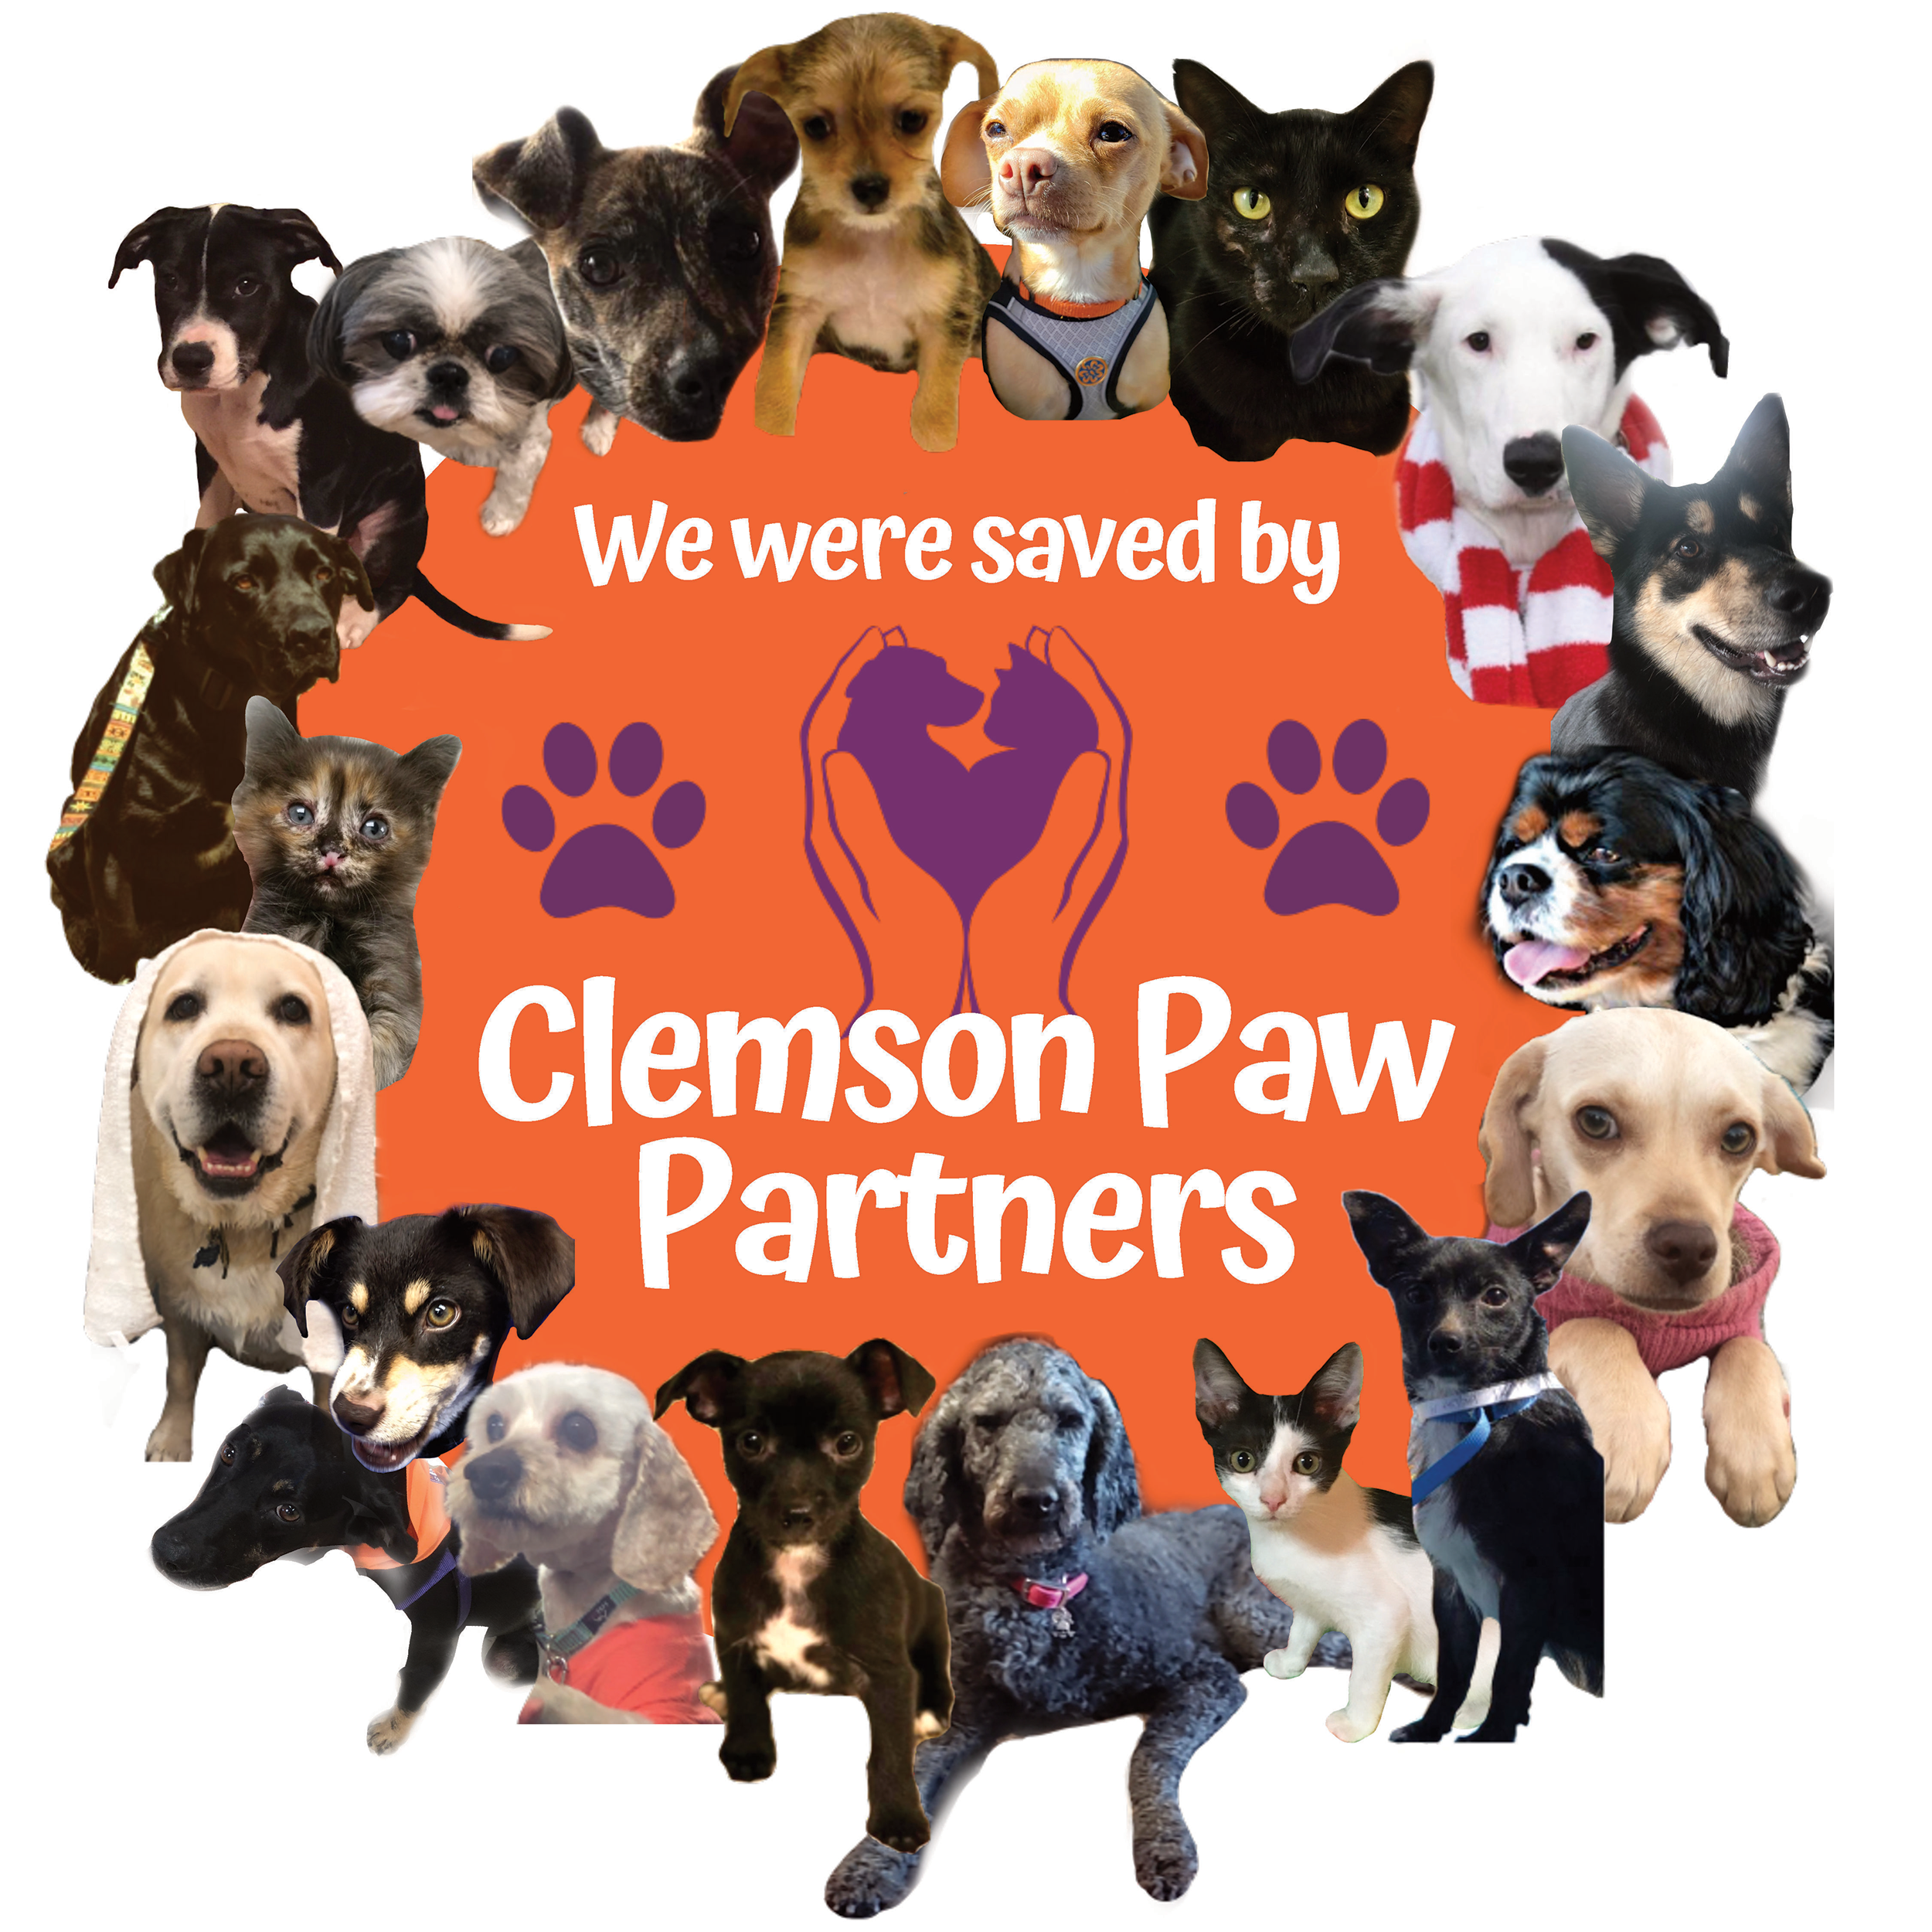 Clemson Paw Partners Saved Animals